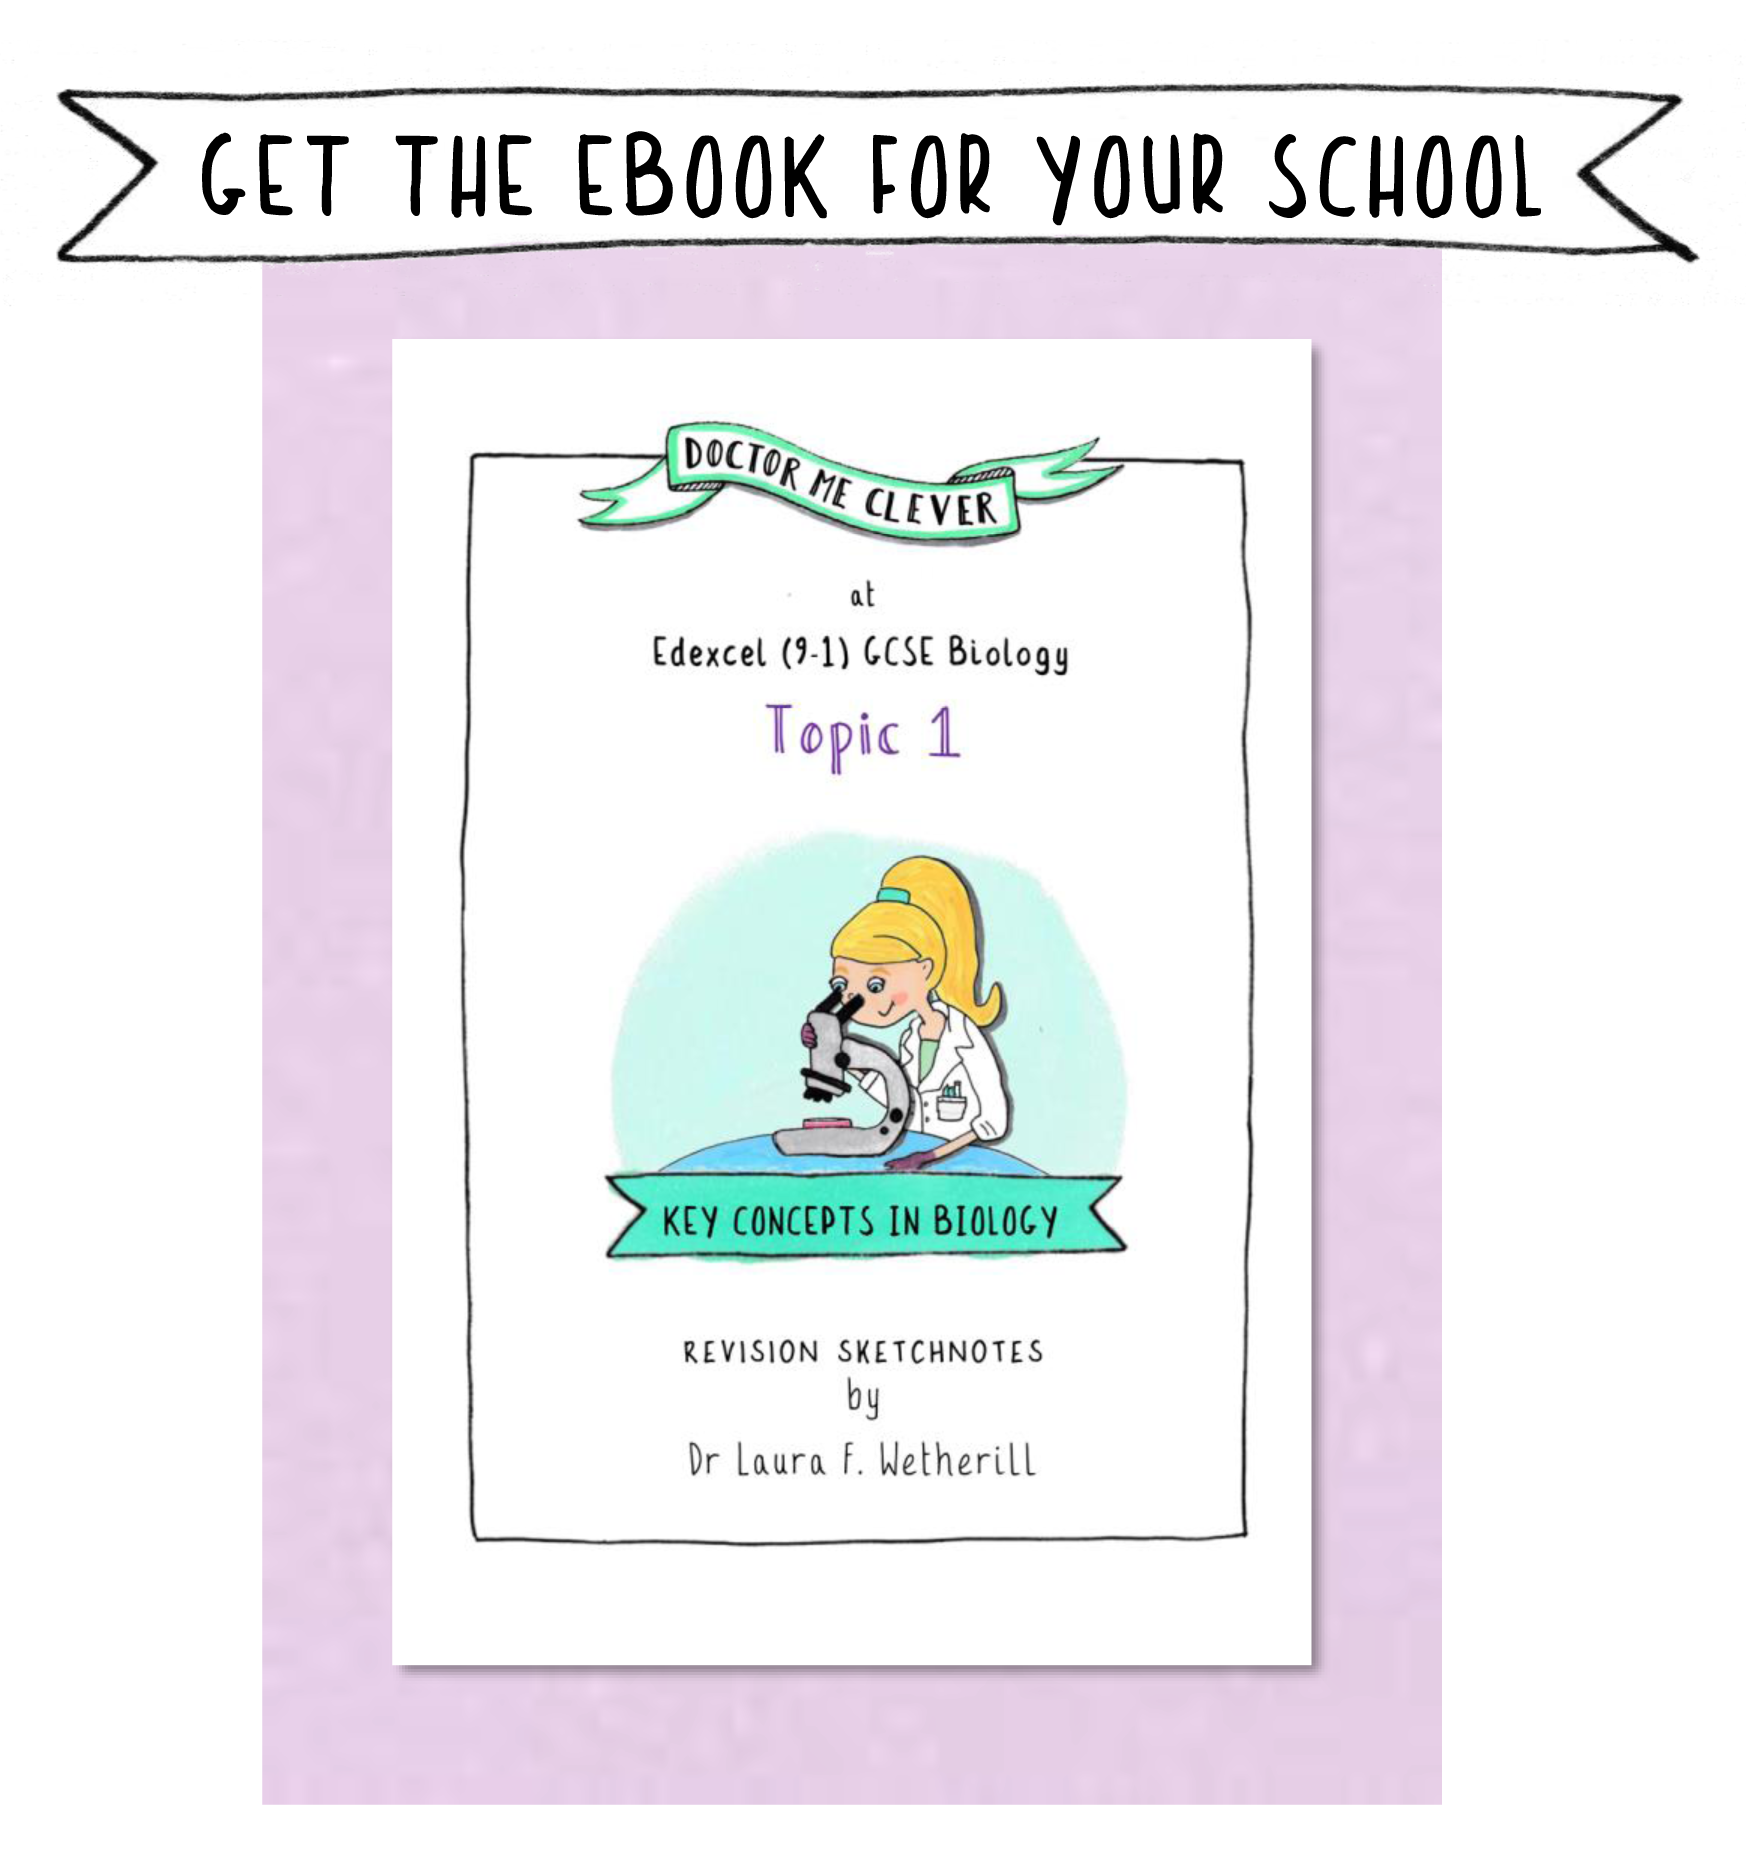 Get the eBook for your school